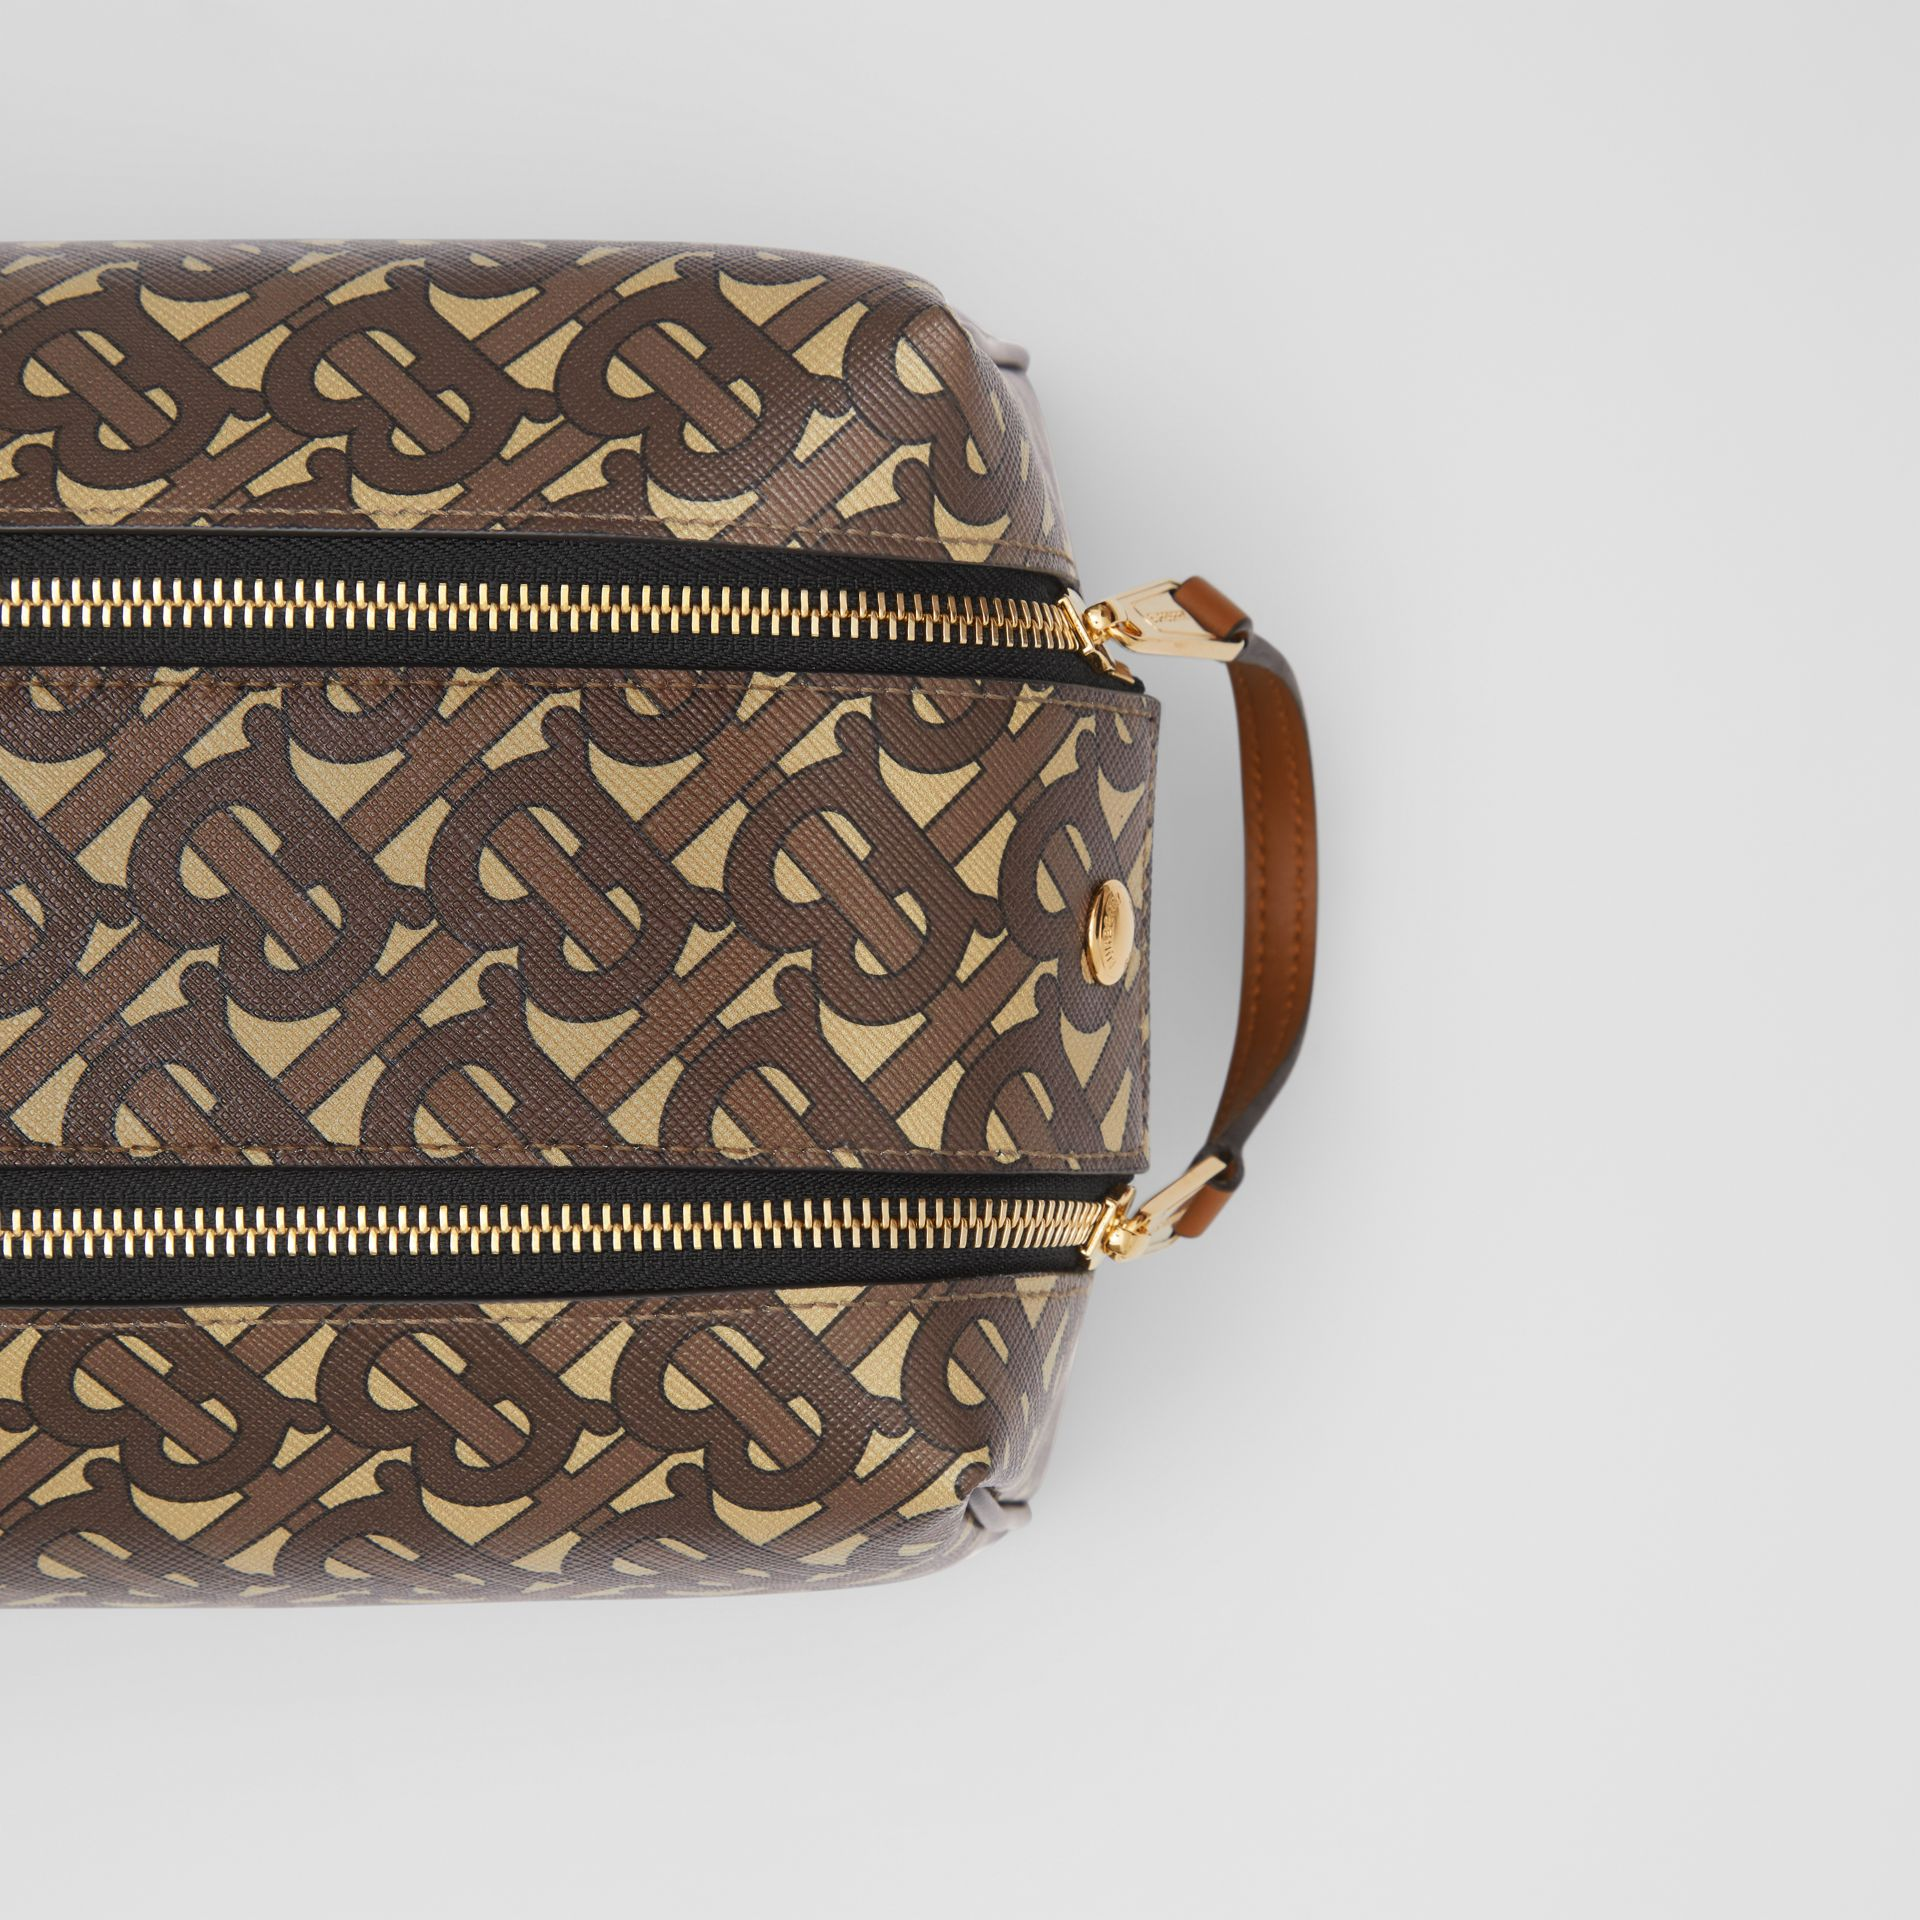 Monogram Print E-canvas Travel Pouch in Bridle Brown | Burberry Australia - gallery image 1